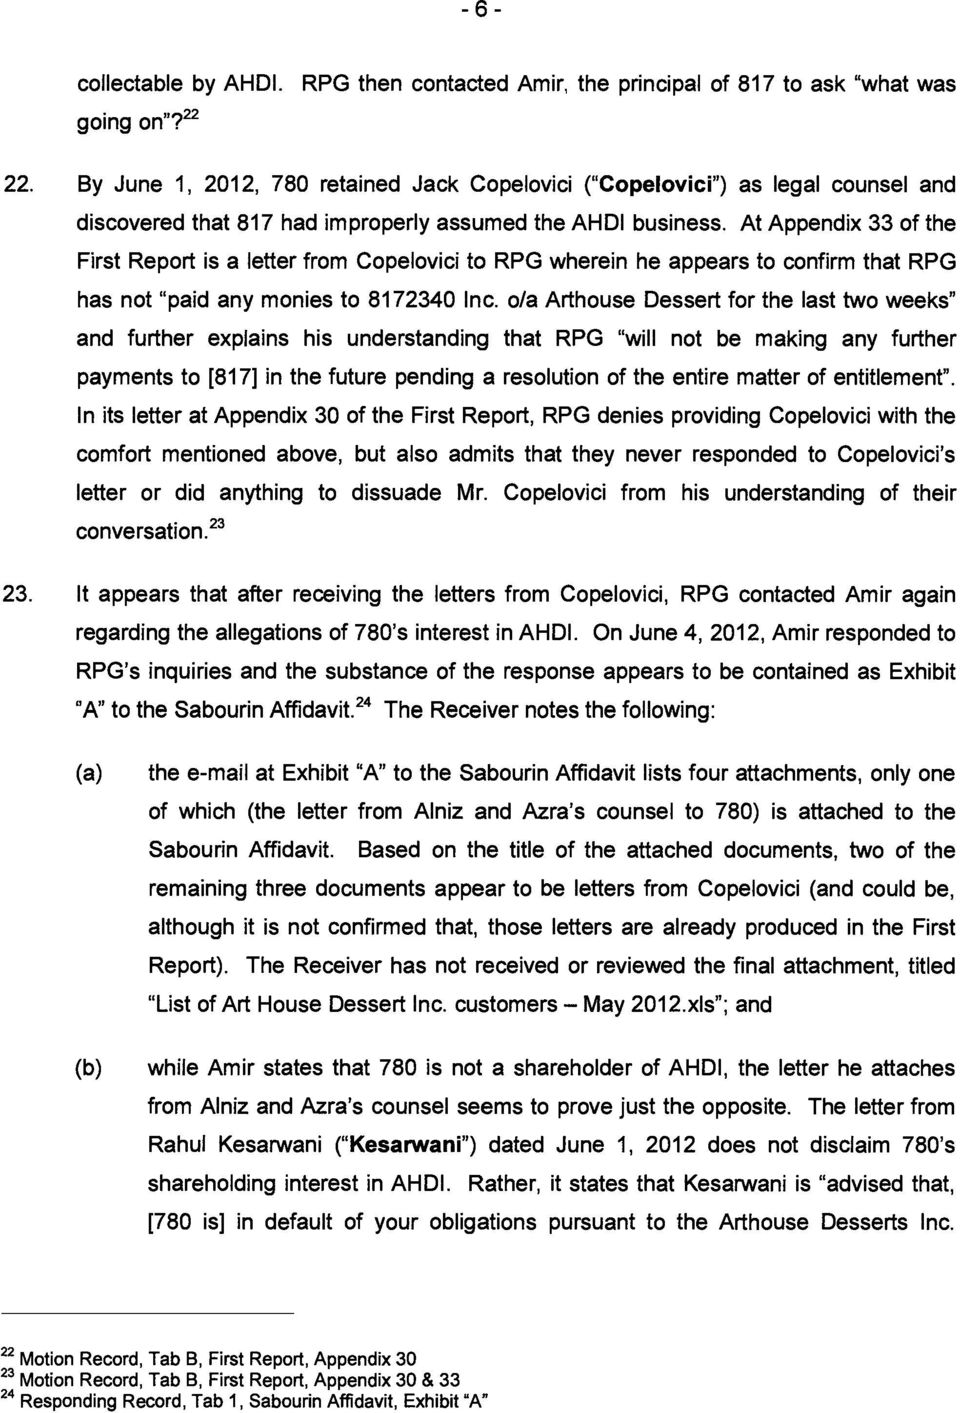 "At Appendix 33 of the First Report is a letter from Copelovici to RPG wherein he appears to confirm that RPG has not ""paid any monies to 8172340 Inc."